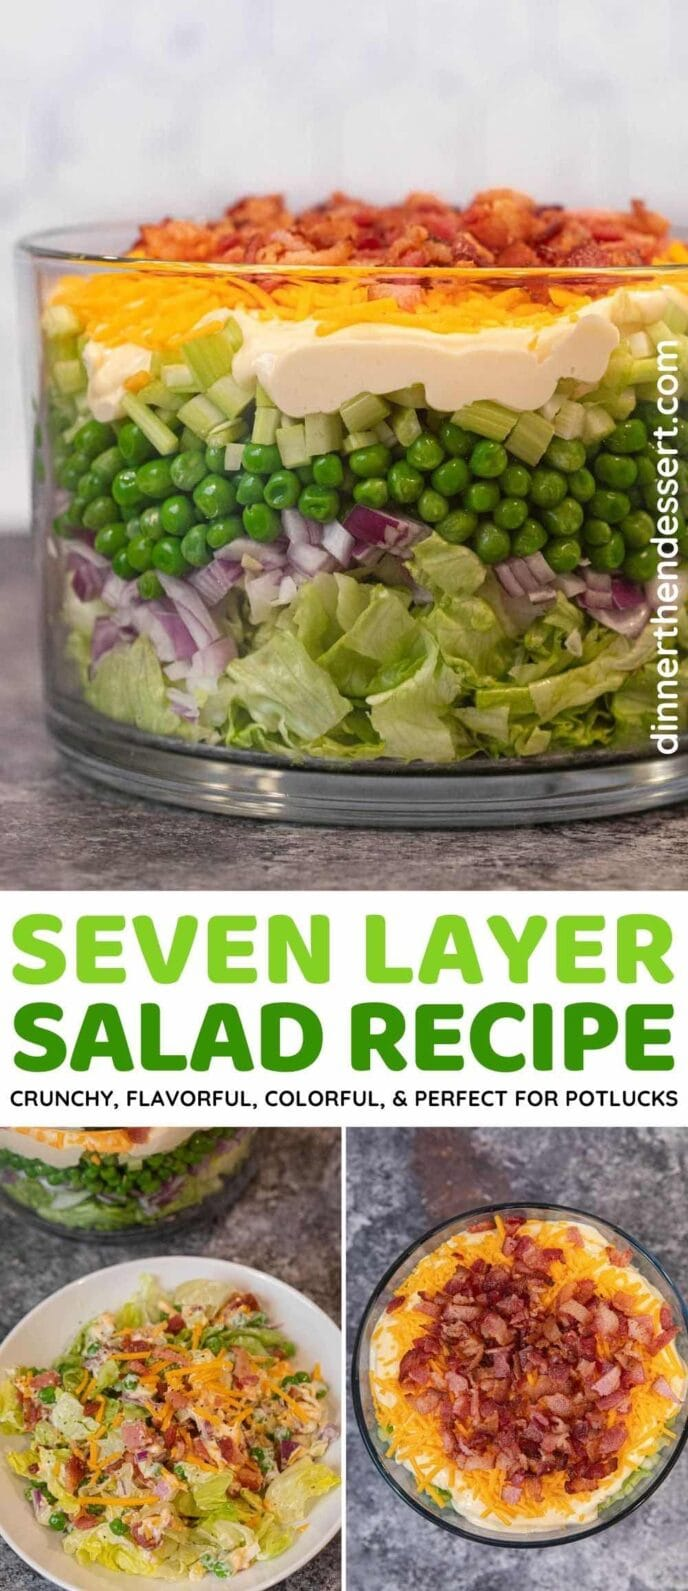 Seven Layer Salad collage